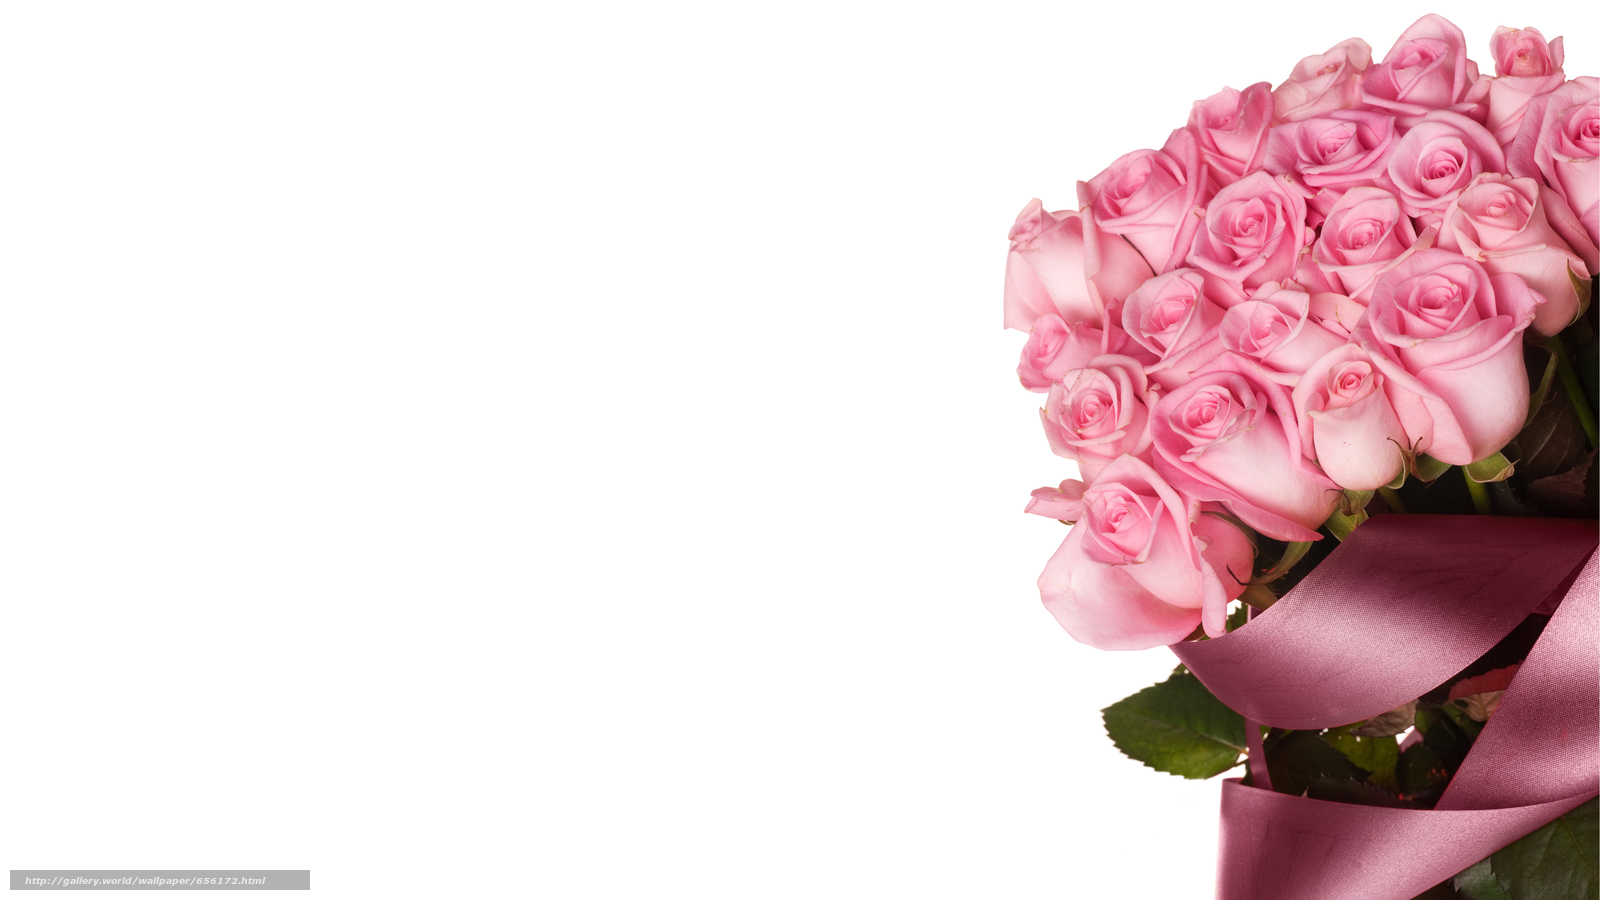 Download wallpaper Personas by Kisenok,  Roses,  pink,  Flowers free desktop wallpaper in the resolution 6407x3603 — picture №656172